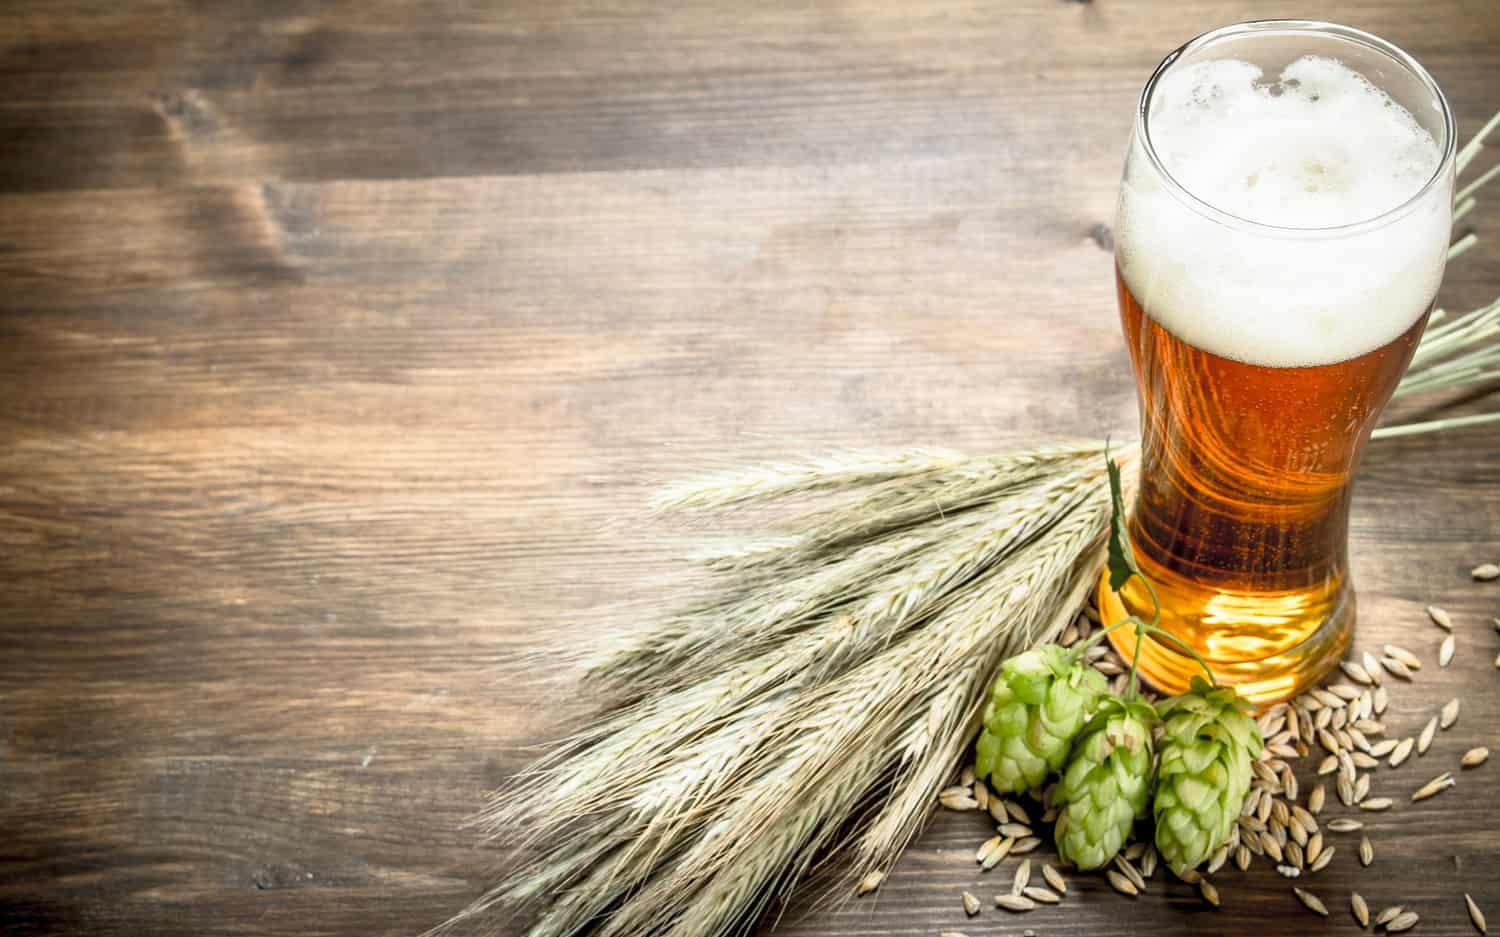 Craft breweries in South Africa are at rock bottom as the ban on alcohol trade has created an unsustainable climate for their businesses to operate in. Photo: Supplied